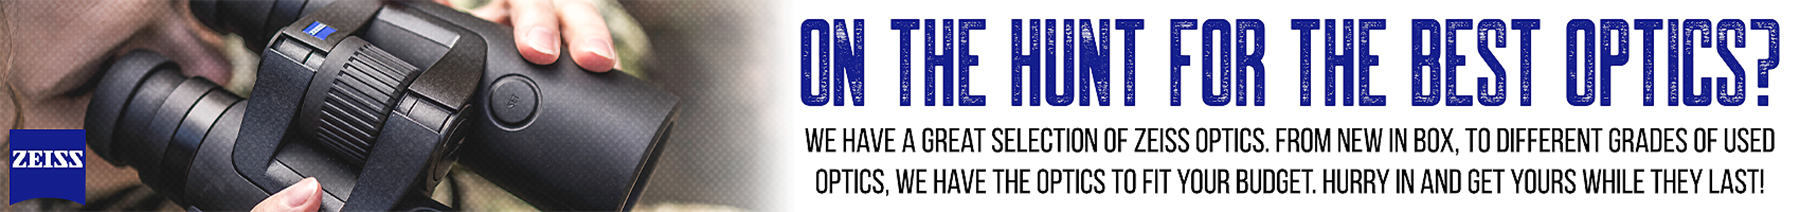 Zeiss Optics Sale